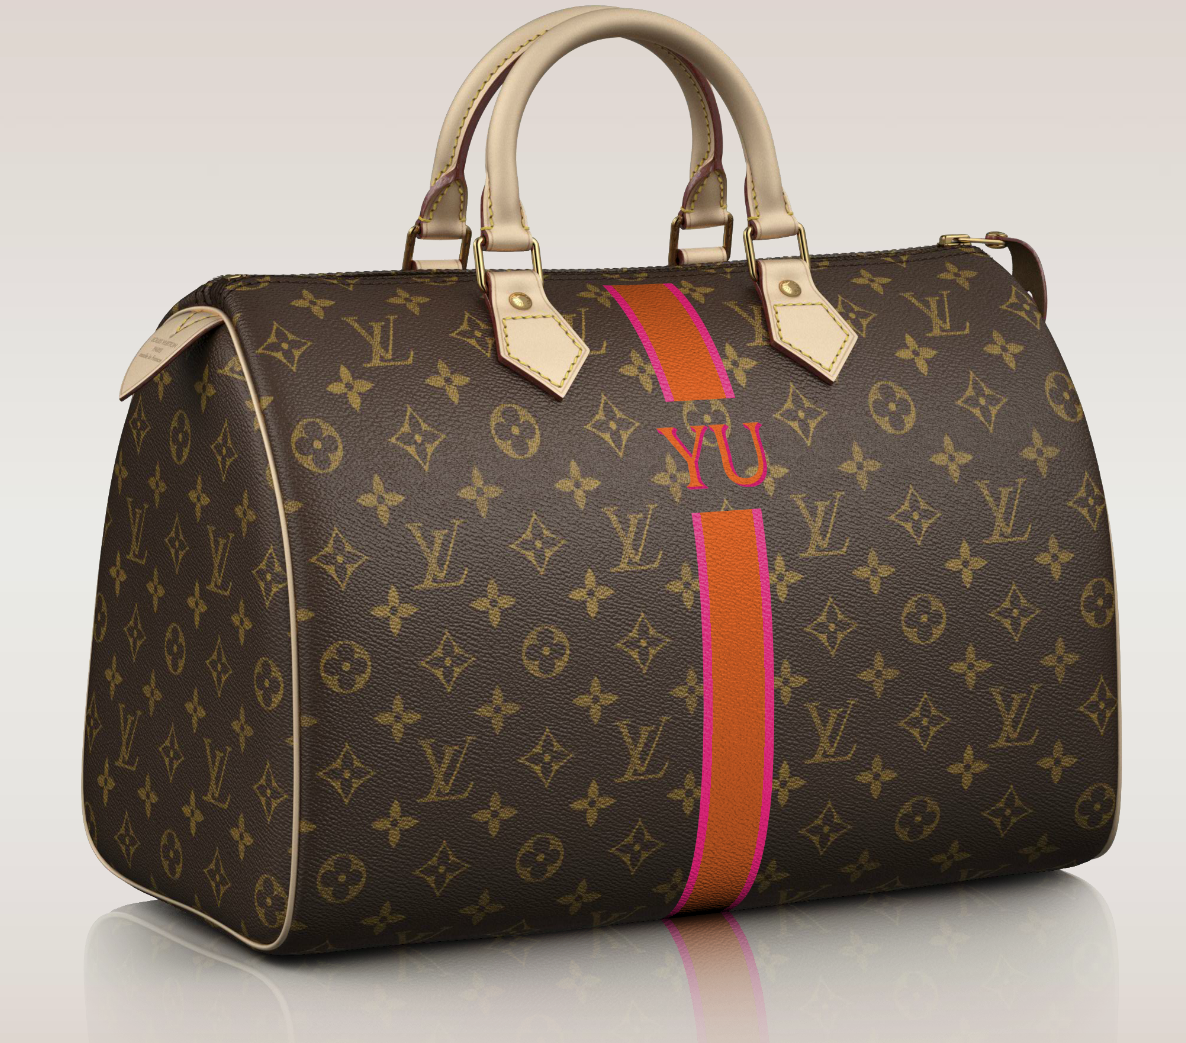 39614e341 Speedy 40 Mon Monogram | DREAM BOARD | Louis vuitton speedy 40, Louis  vuitton, Louis vuitton handbags